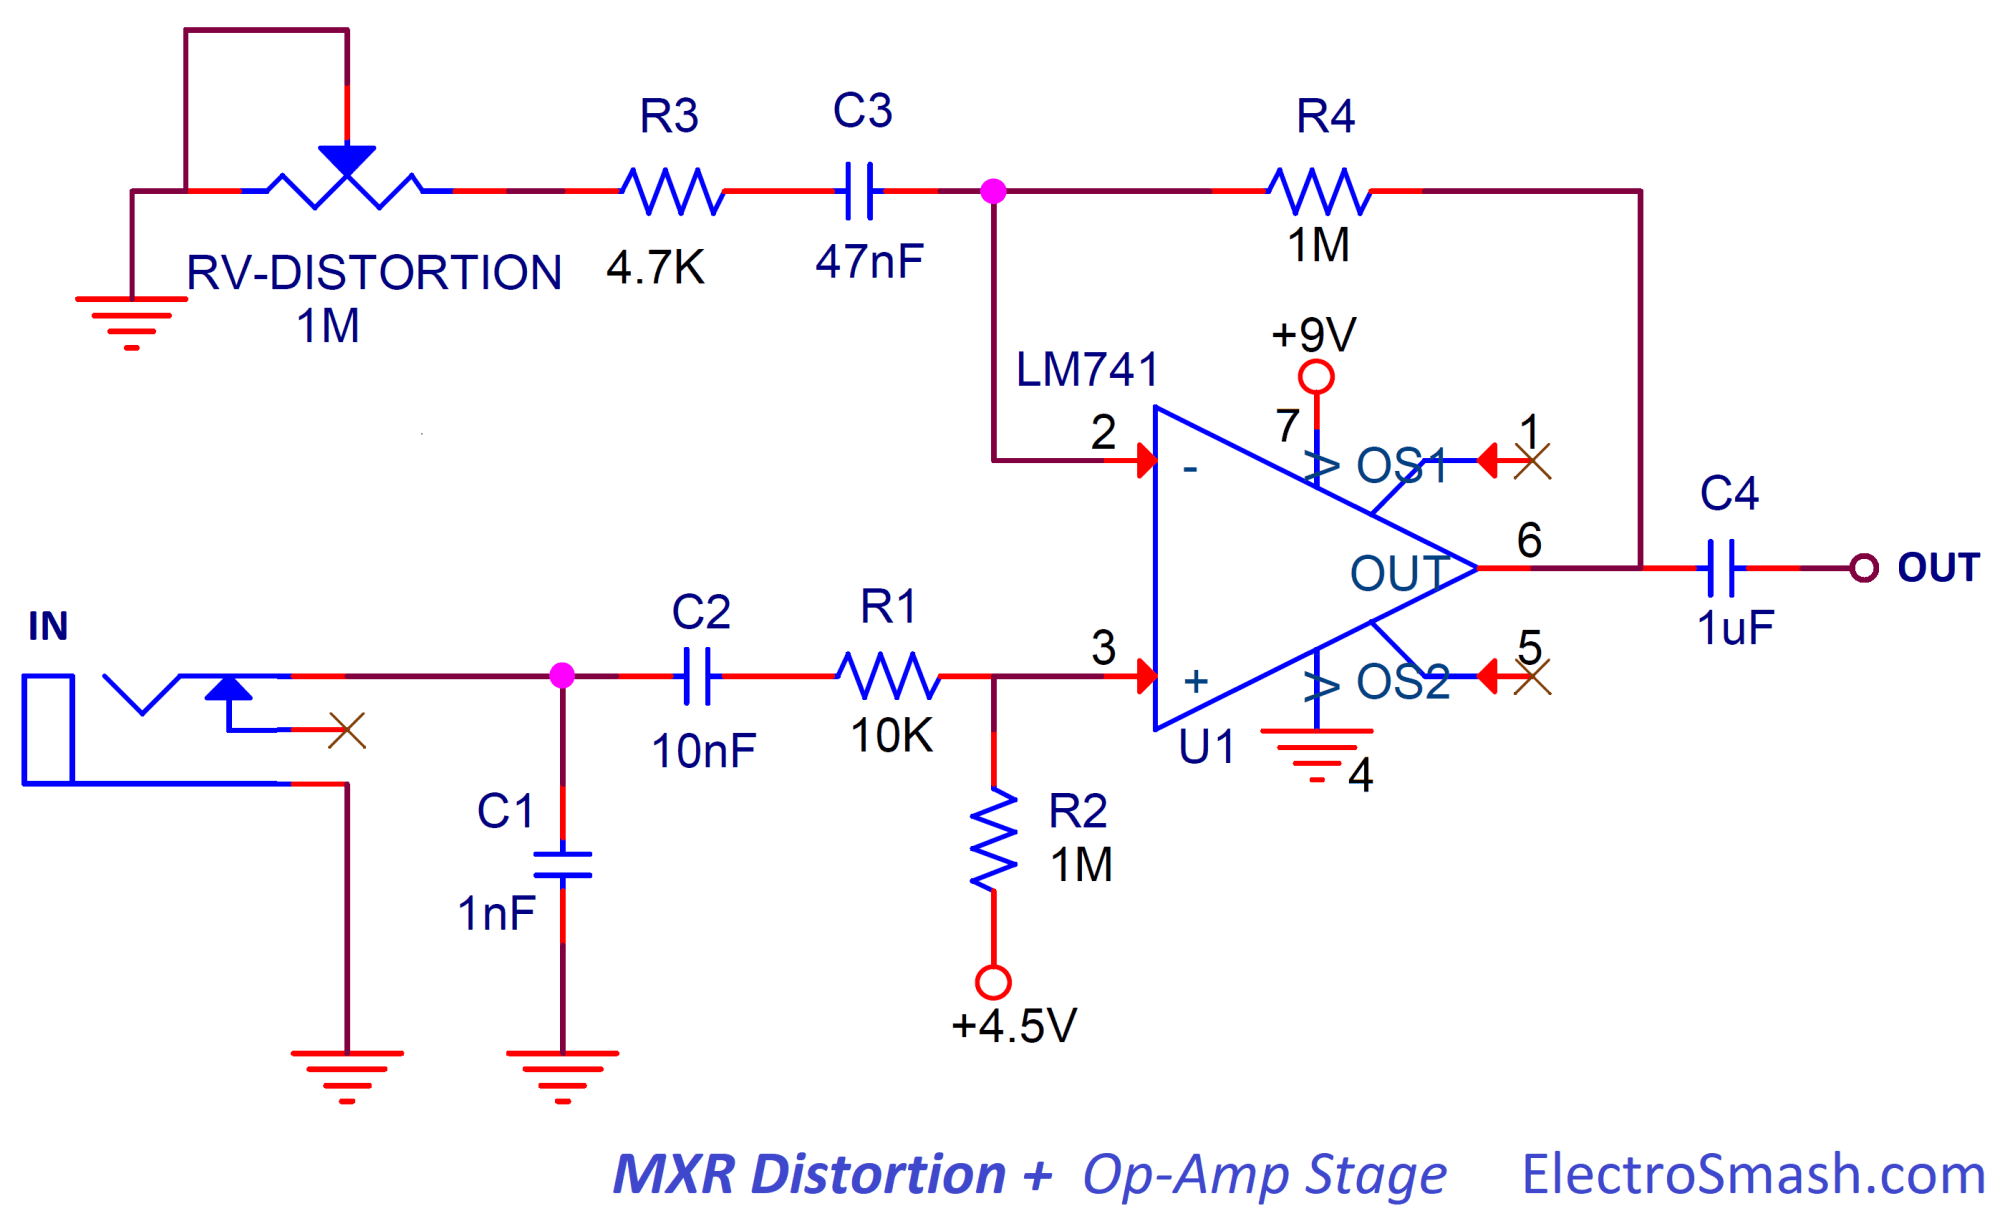 hight resolution of mxr preamp wiring diagram wiring diagram expert mxr pre amp wiring diagram